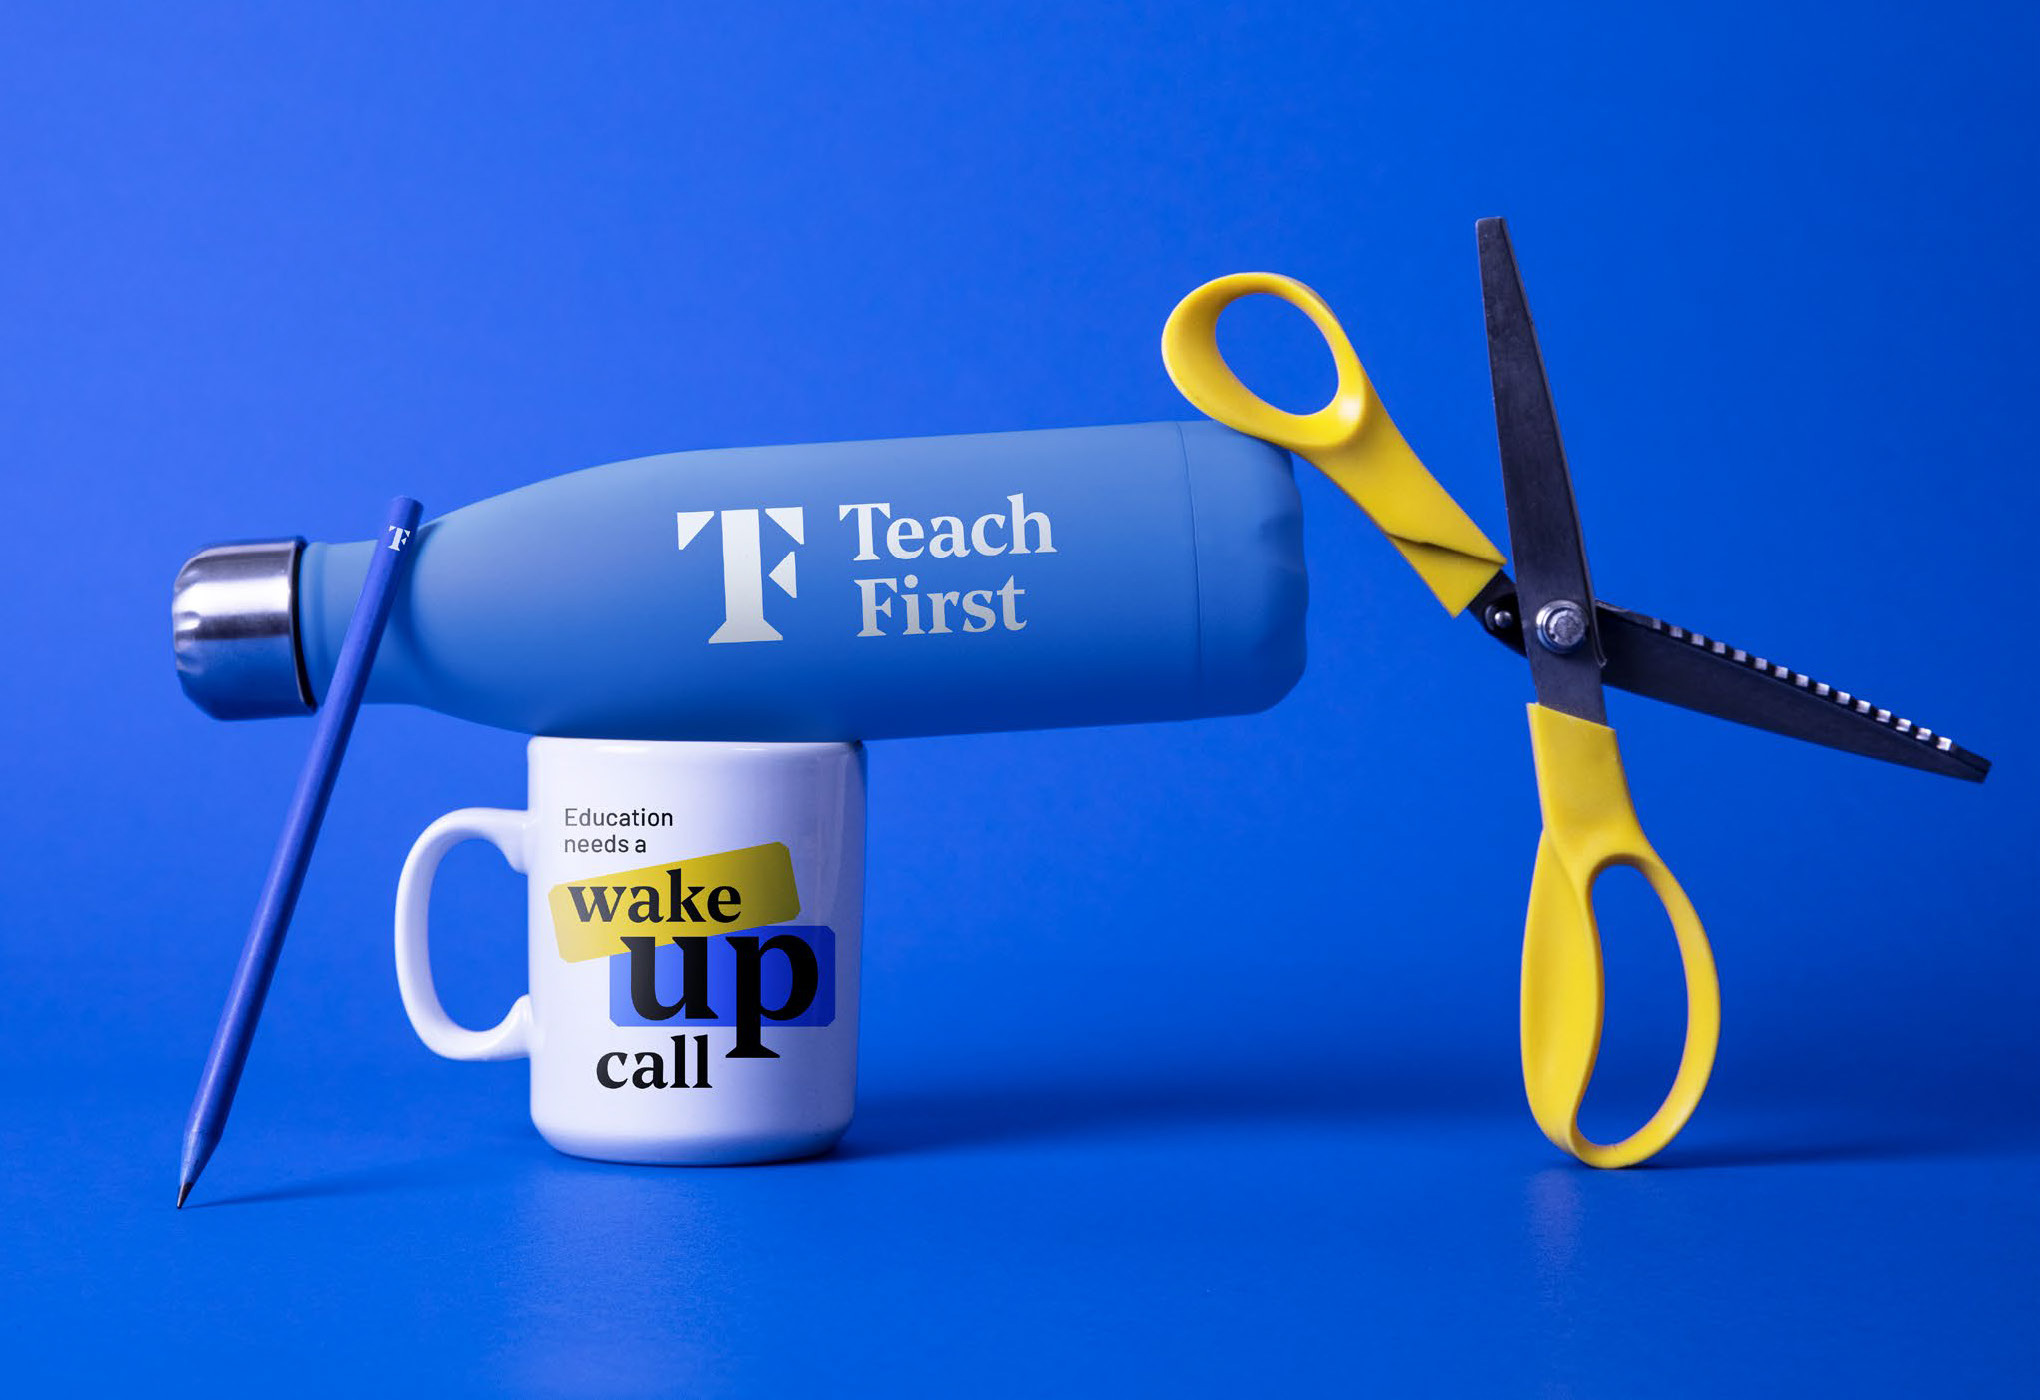 New Logo and Identity for Teach First by Johnson Banks